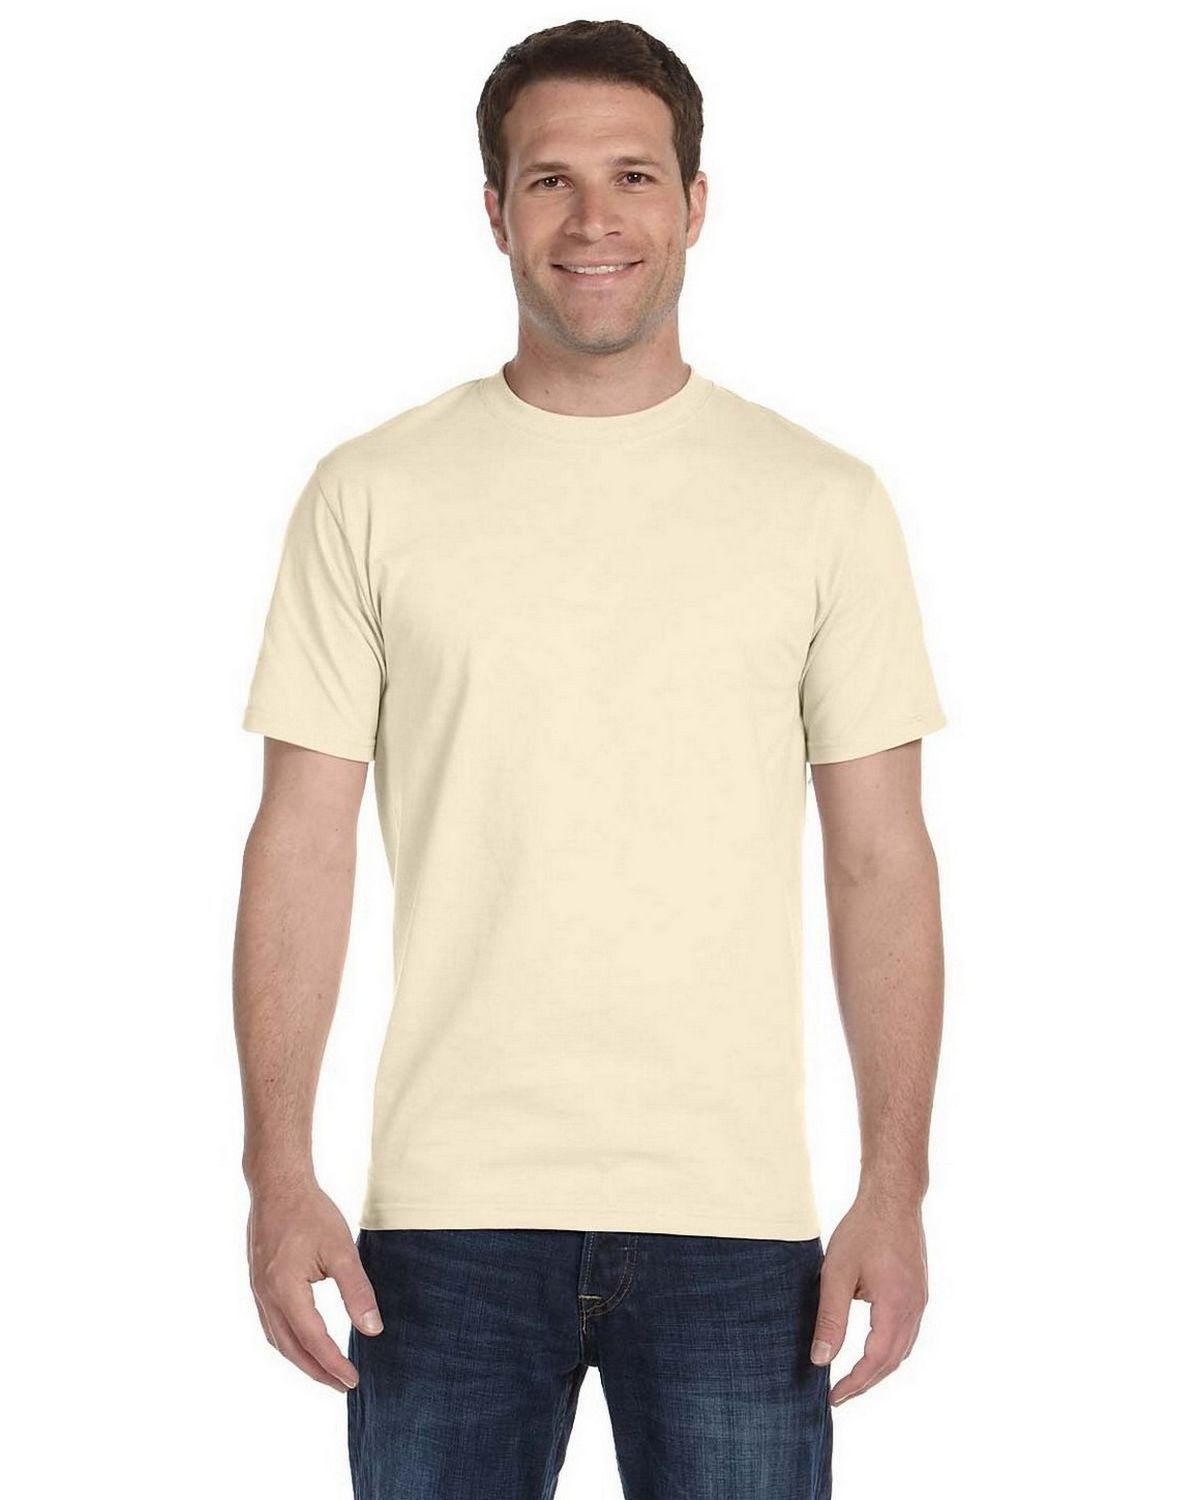 Cotton T-Shirt 5180 All Colors Unisex T Shirt S Hanes Beefy-T 6.1 oz 3XL